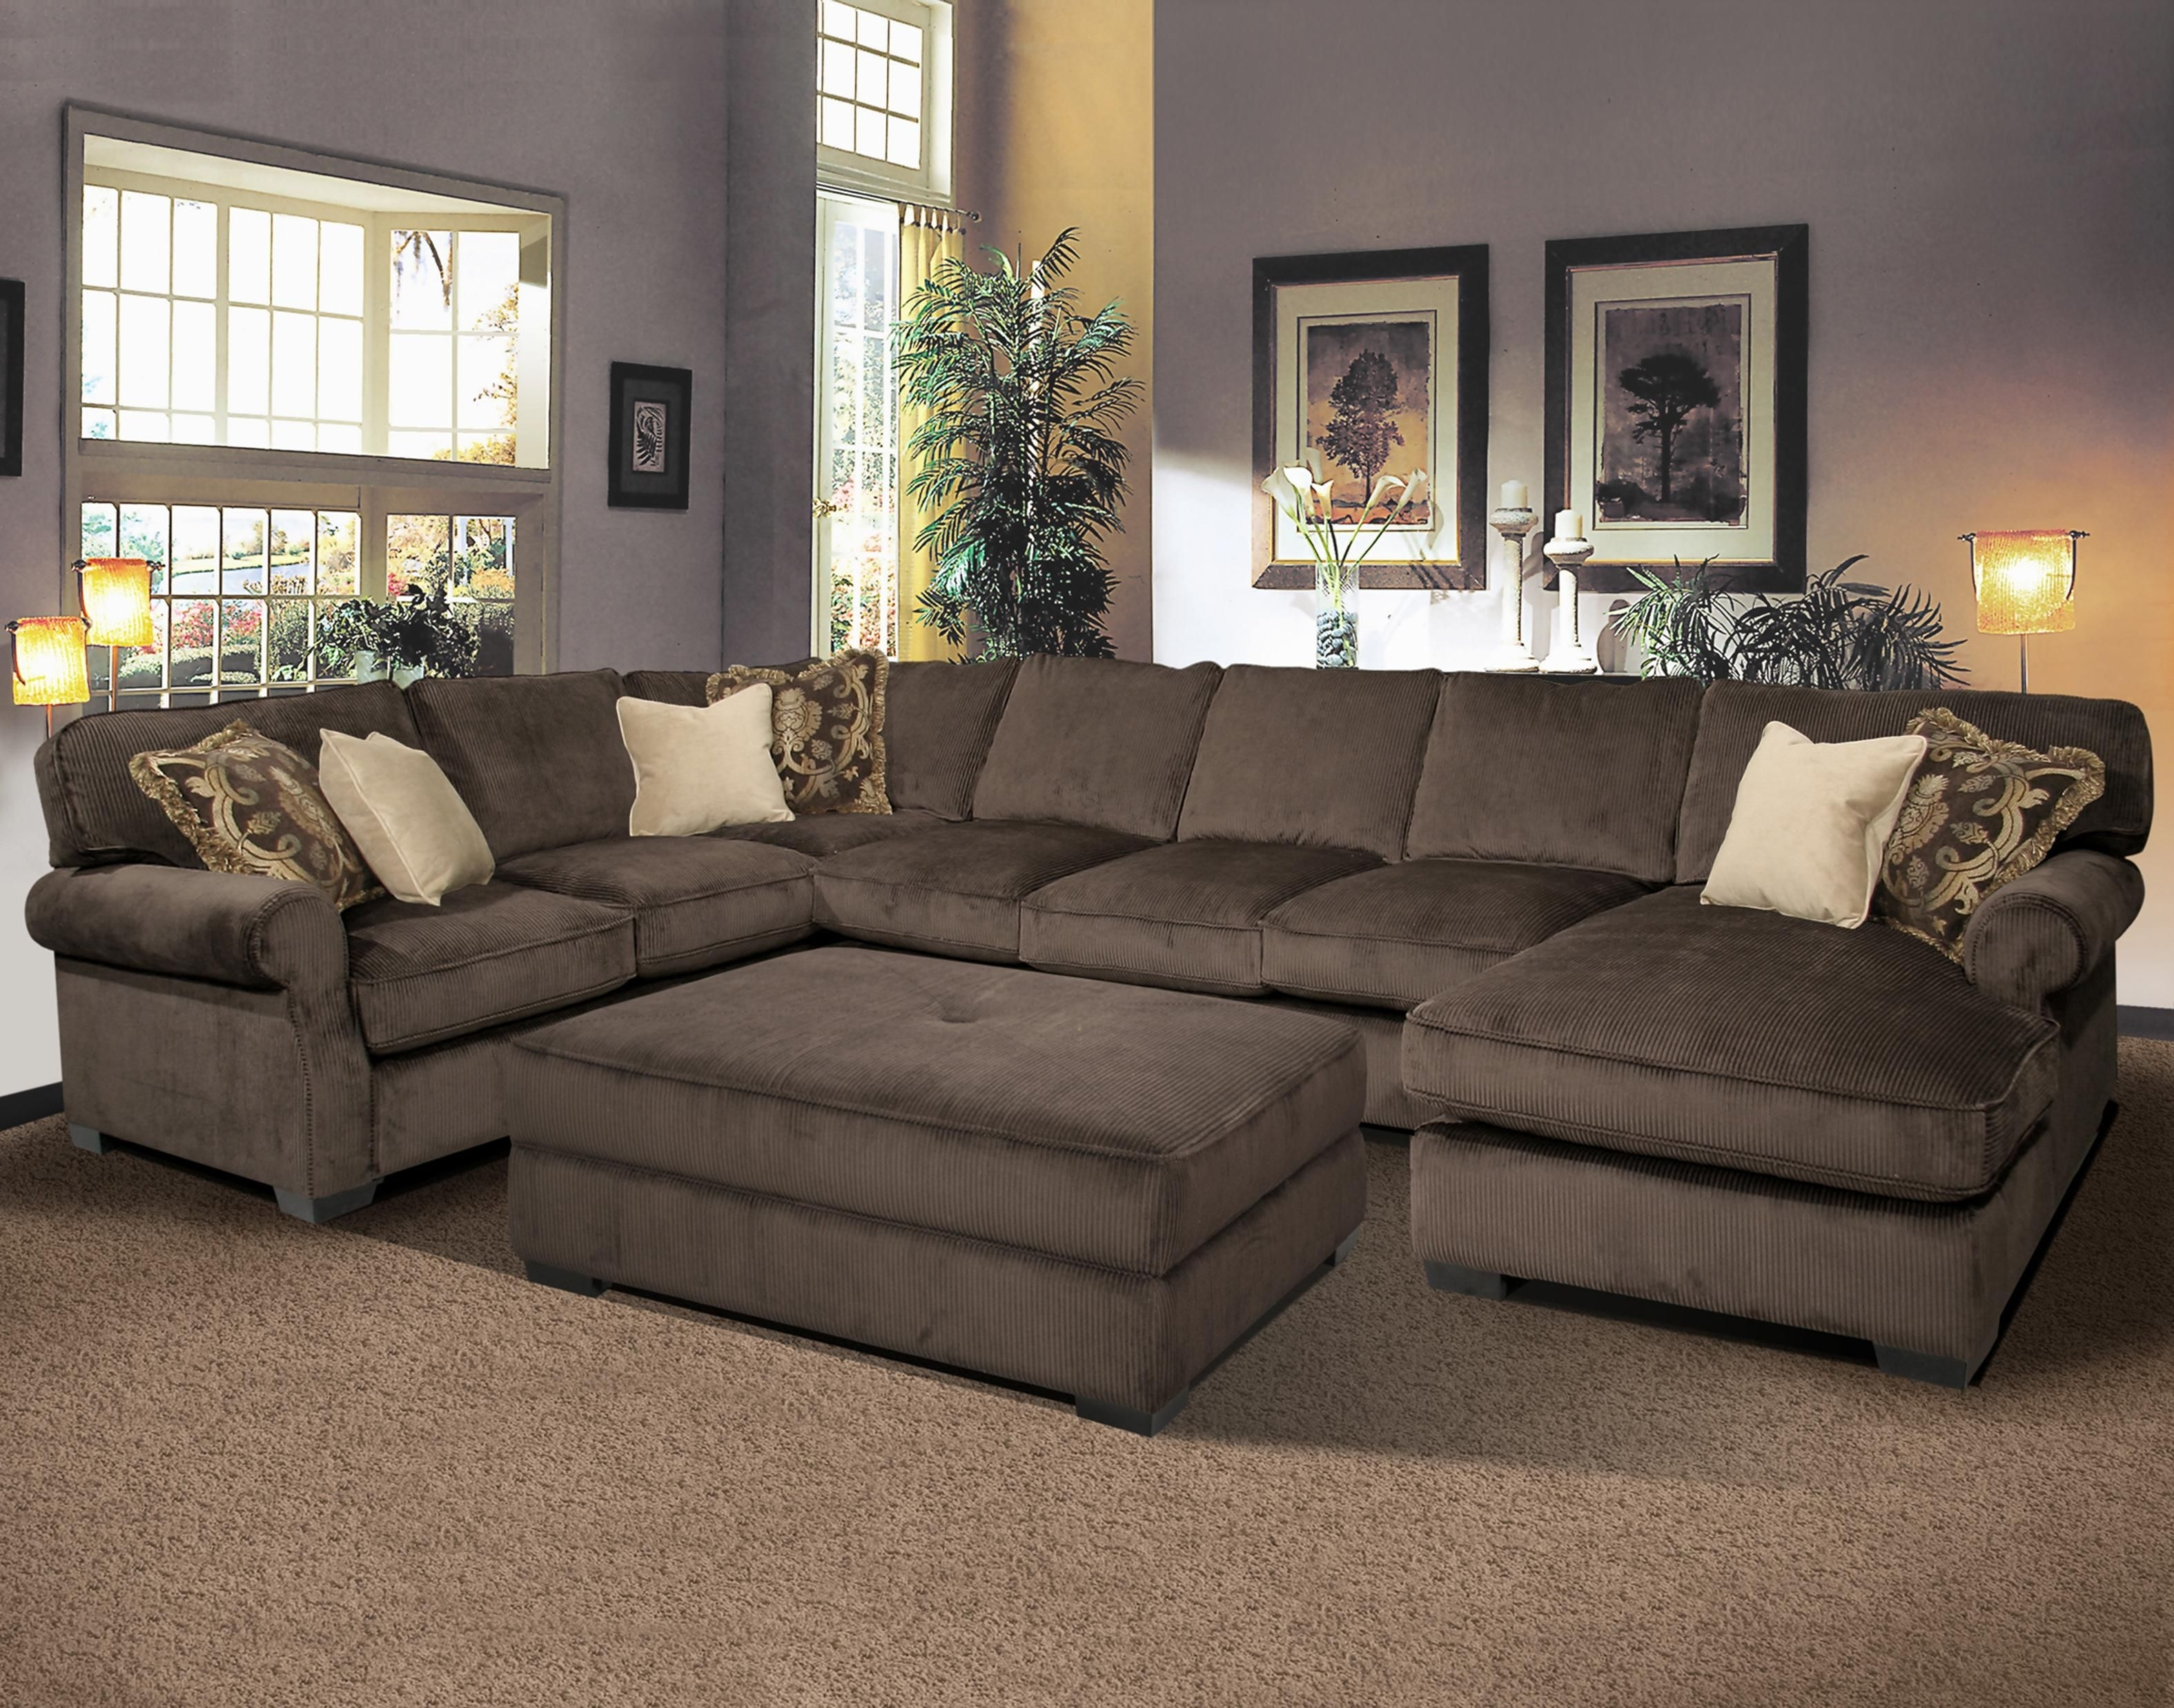 Big And Comfy Grand Island Large, 7 Seat Sectional Sofa With Right Throughout Long Sectional Sofas With Chaise (View 4 of 10)